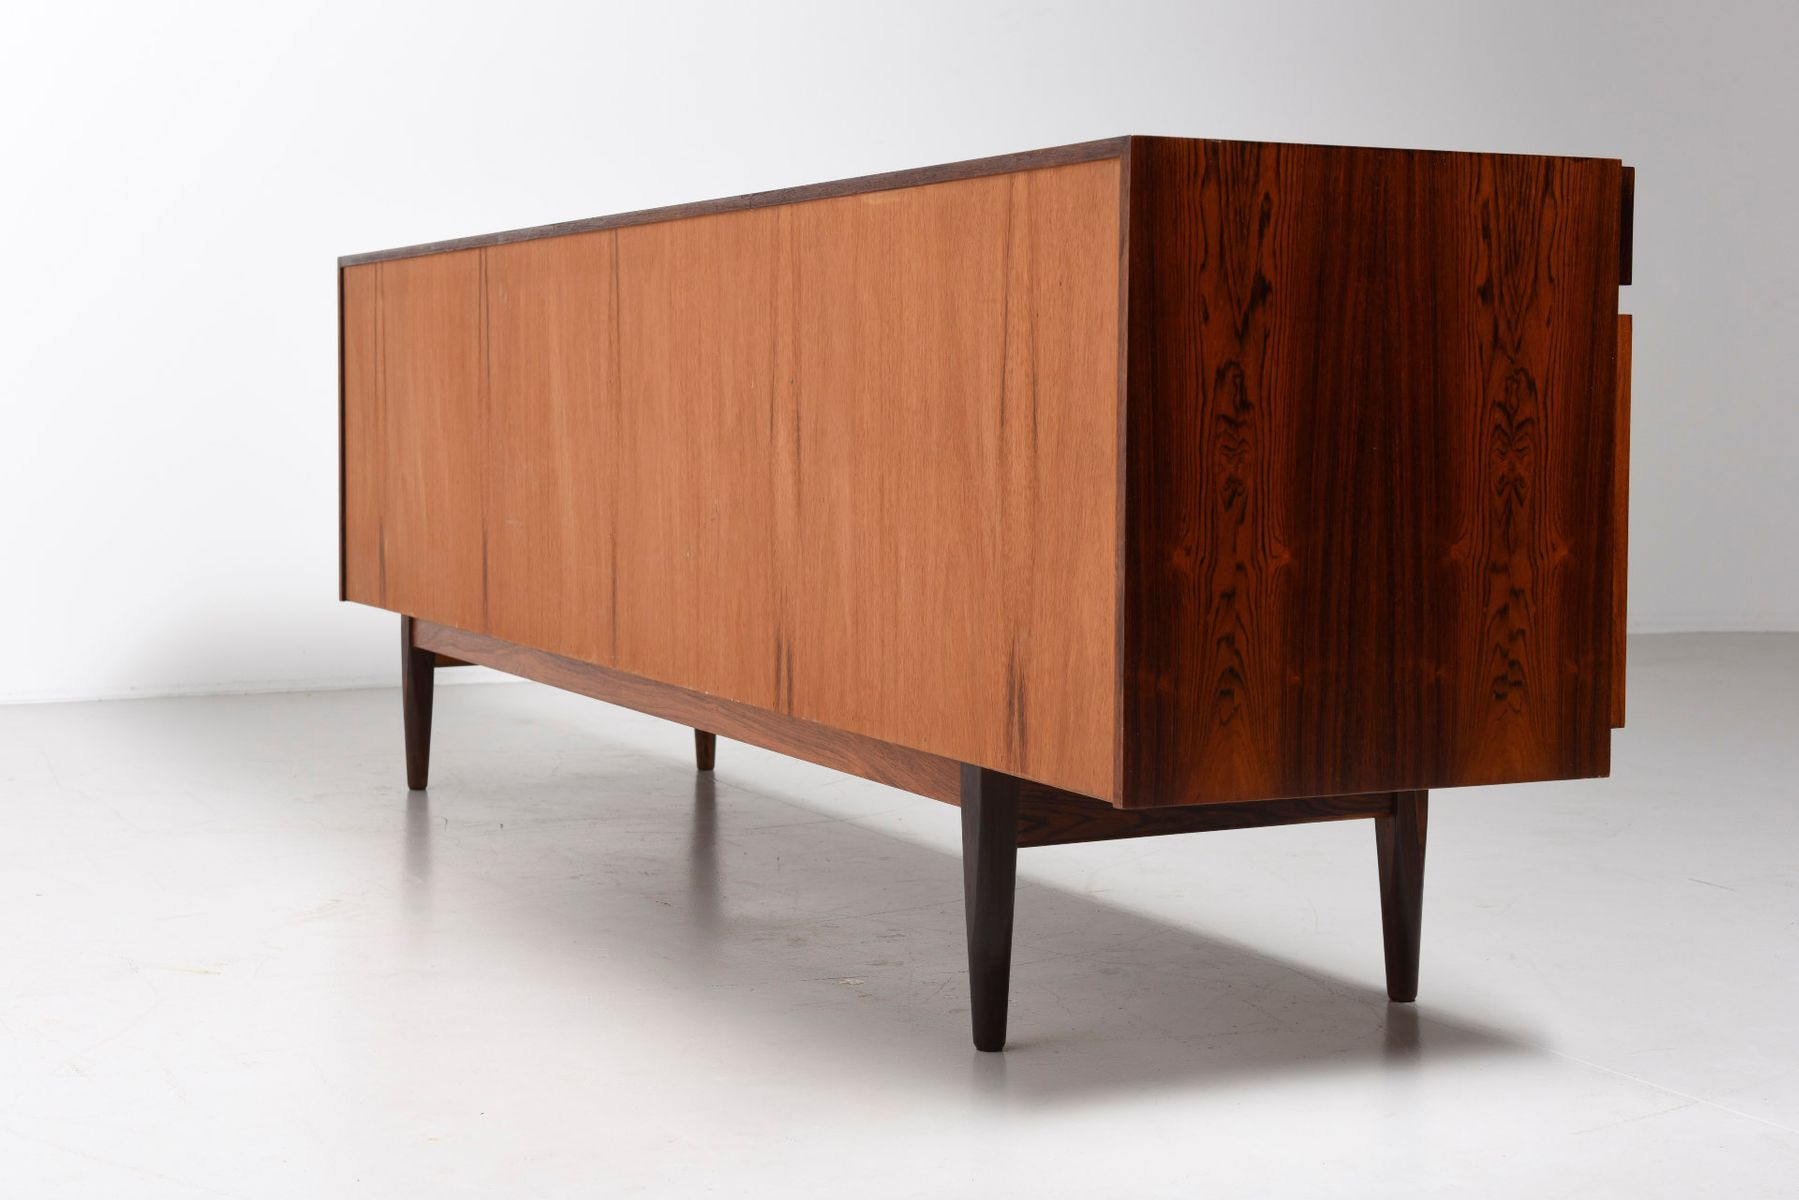 mid century fa66 sideboard by ib kofod larsen for faarup m belfabrik for sale at pamono. Black Bedroom Furniture Sets. Home Design Ideas